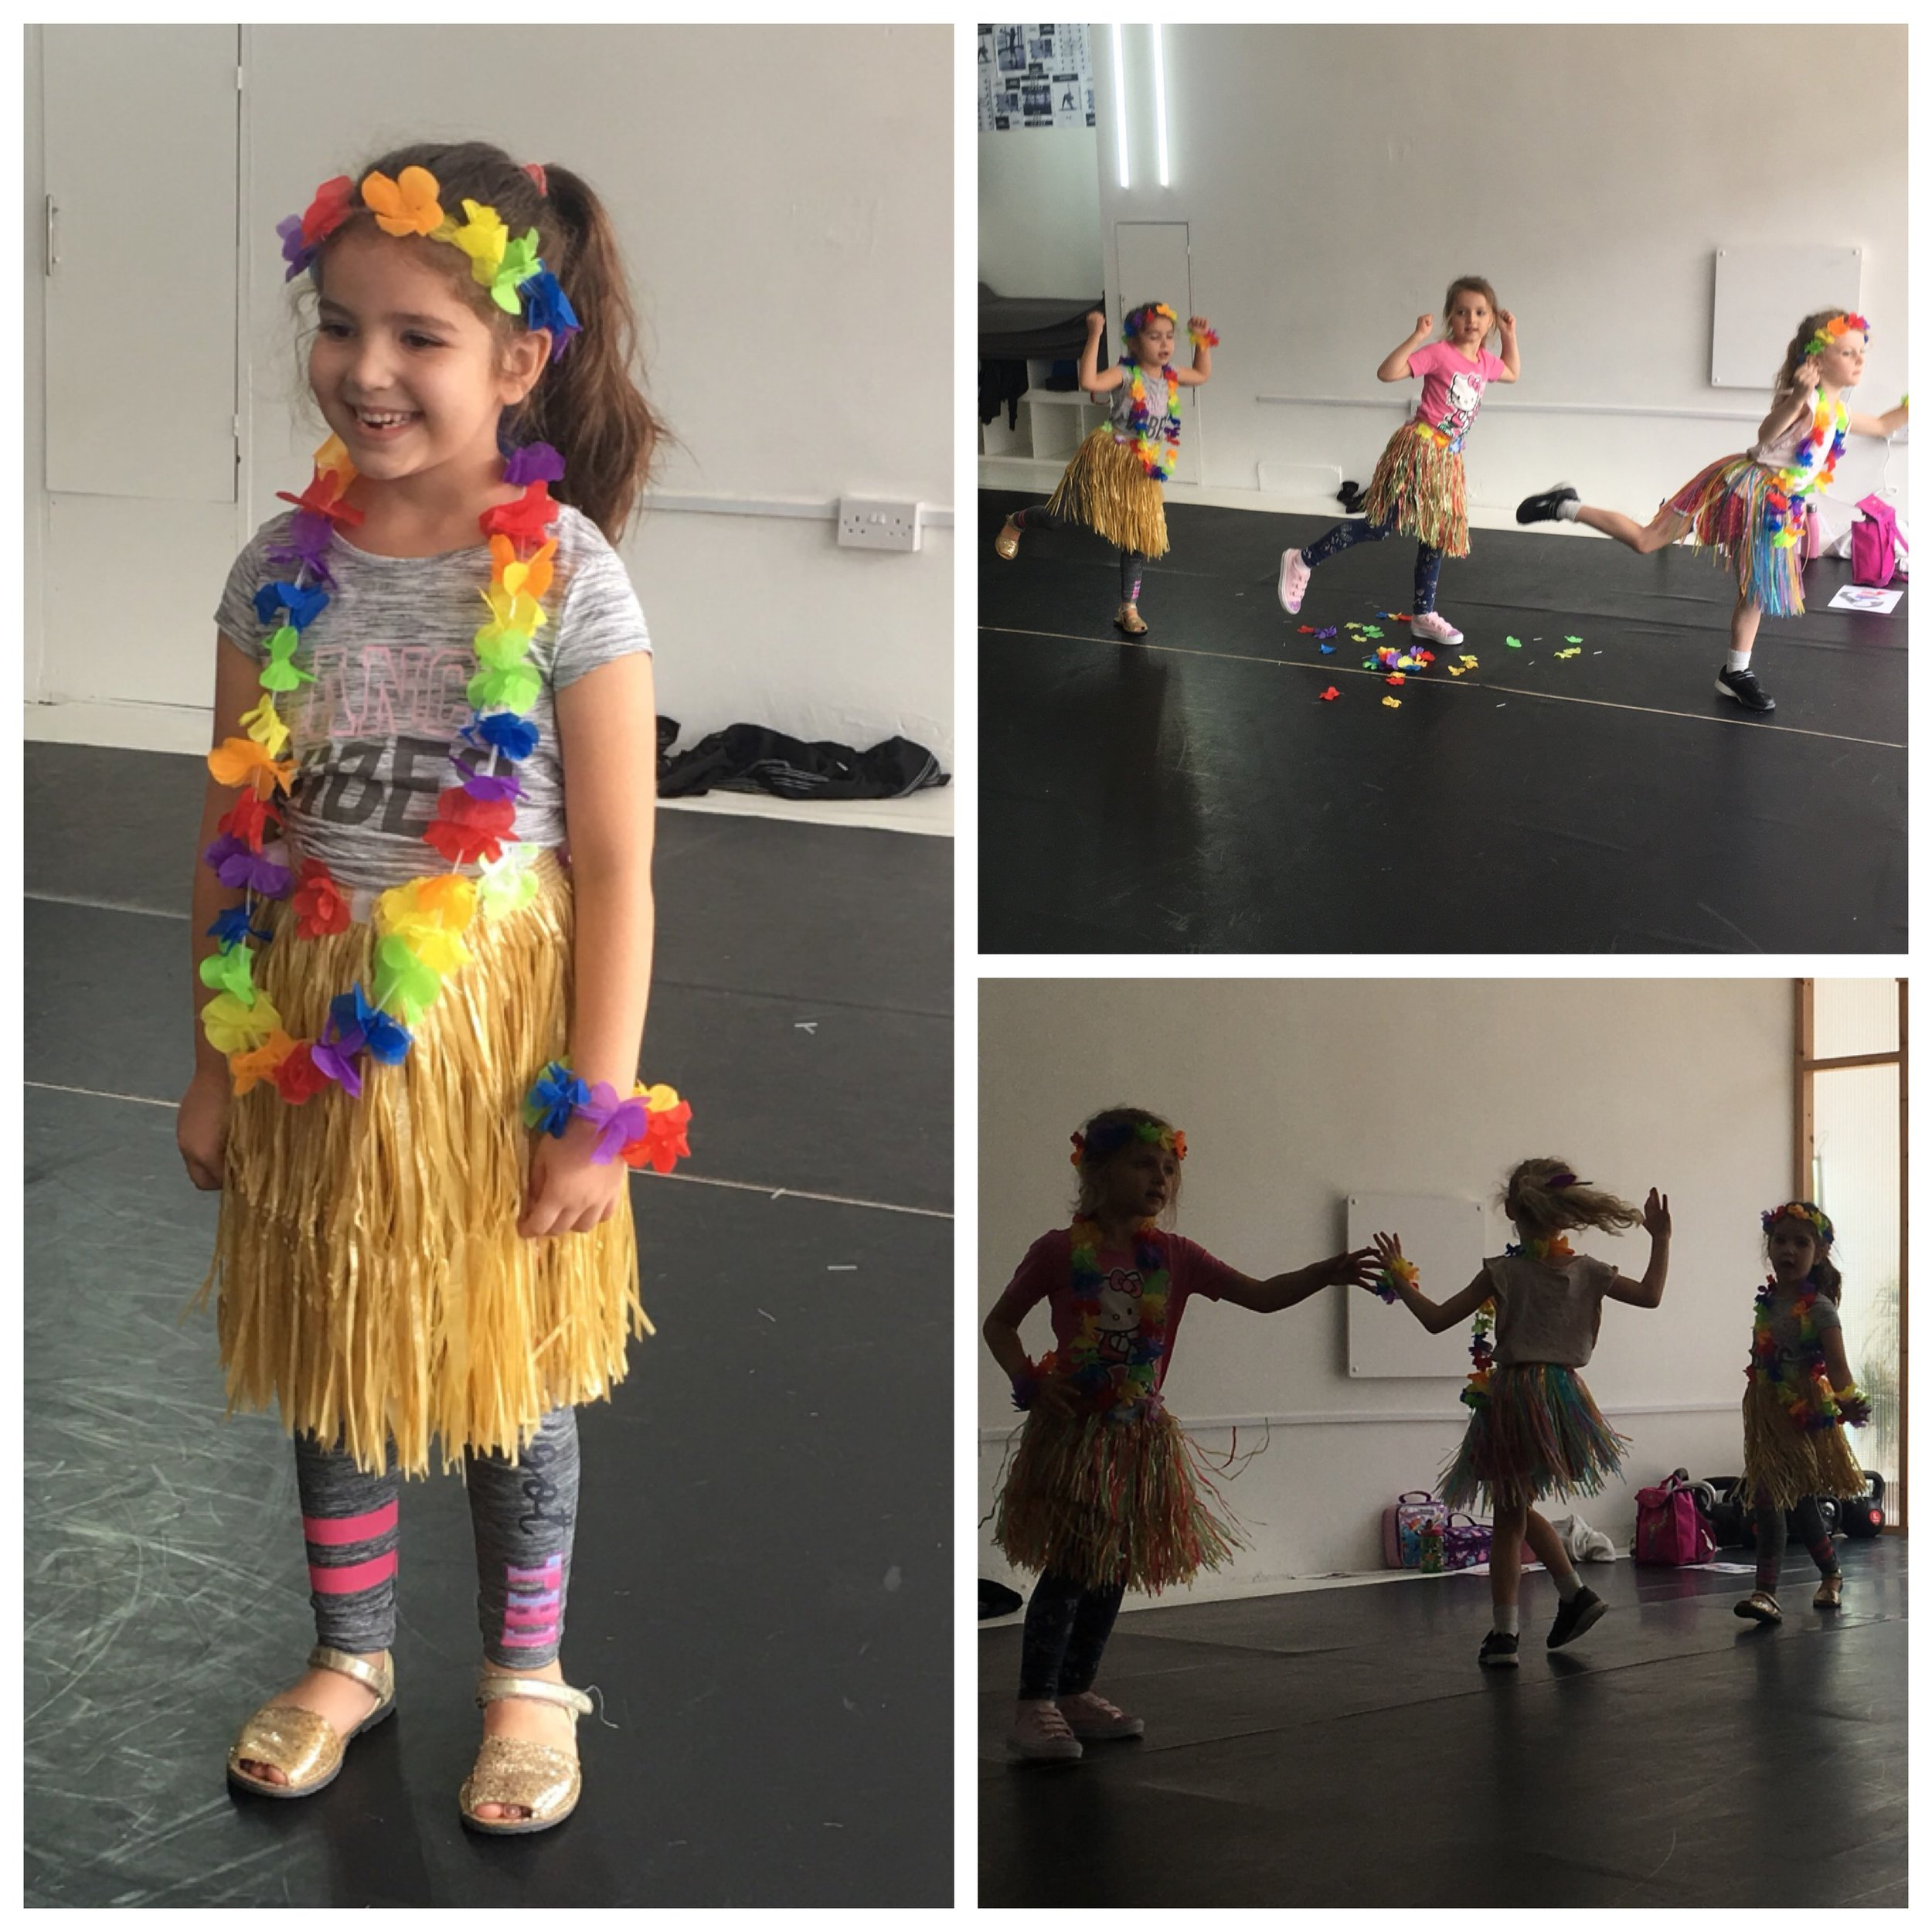 Summer Holidays 2018: Moana Workshop - A whole day filled with Moana! We danced to the soundtrack, decorated pictures of Moana, dressed up in Hawaiian Leis and even watched the film over lunch! The day culminated in a parent performance in full costume!